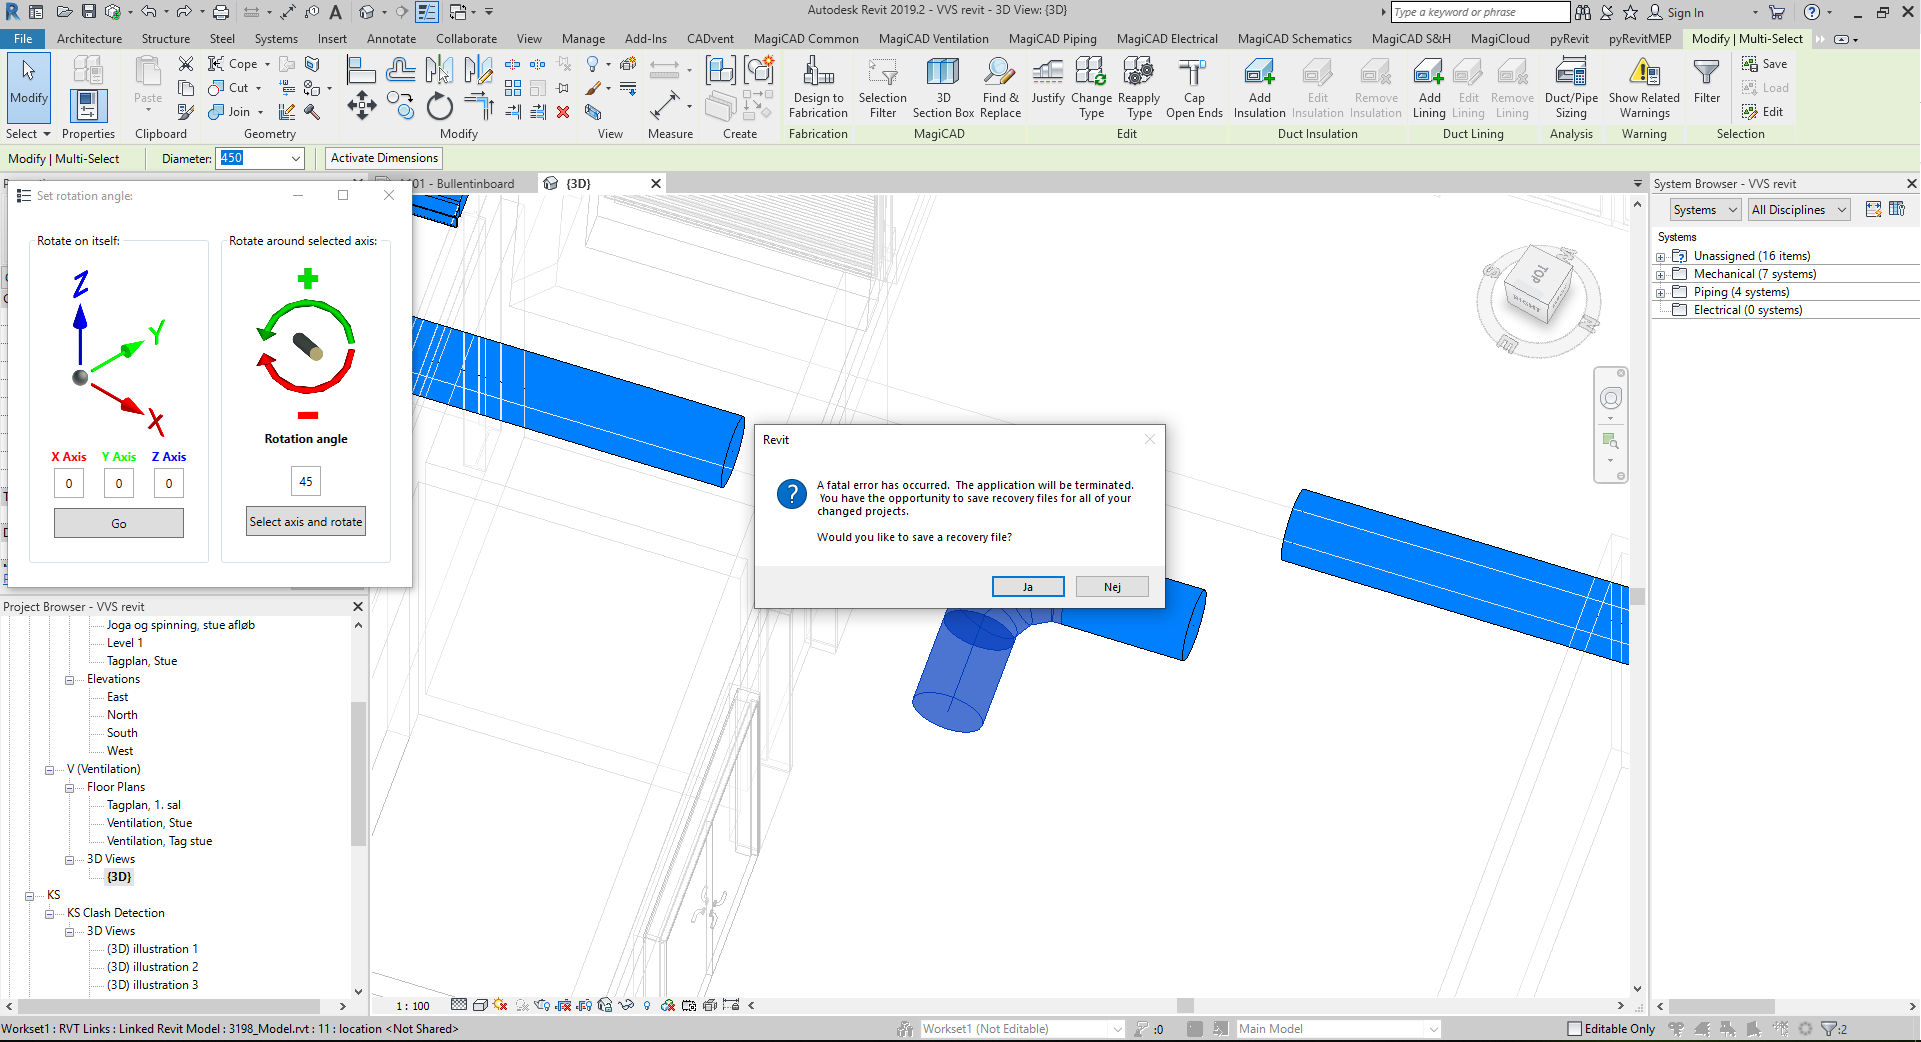 Revit 2019 crashes when using 3D rotate tool · Issue #10